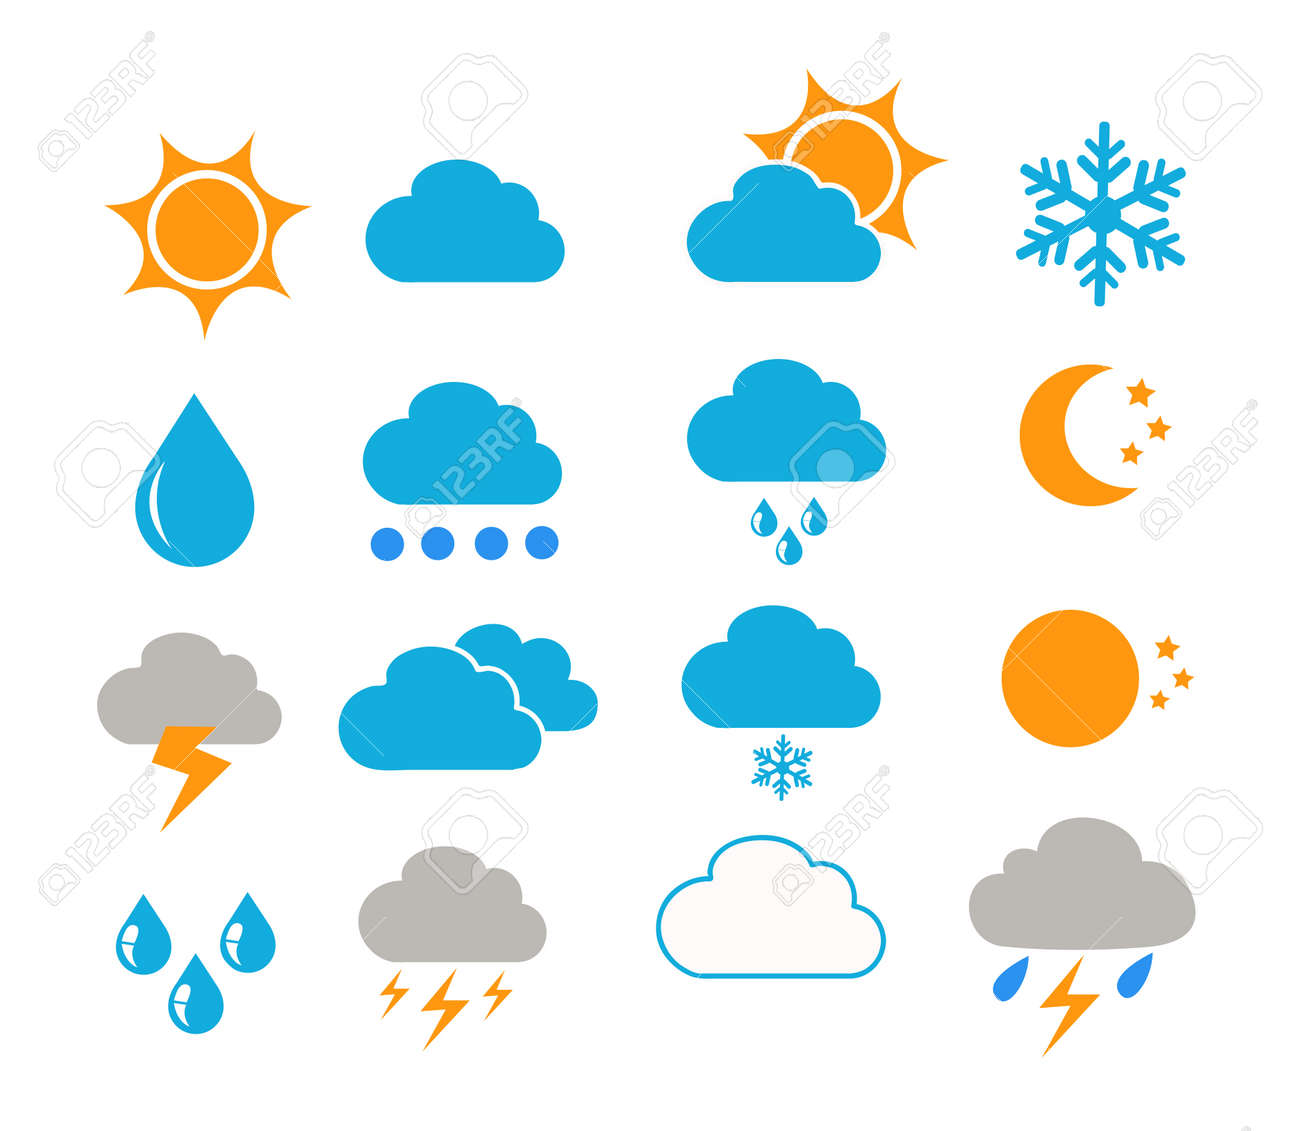 weather icons vector illustration - 157751979